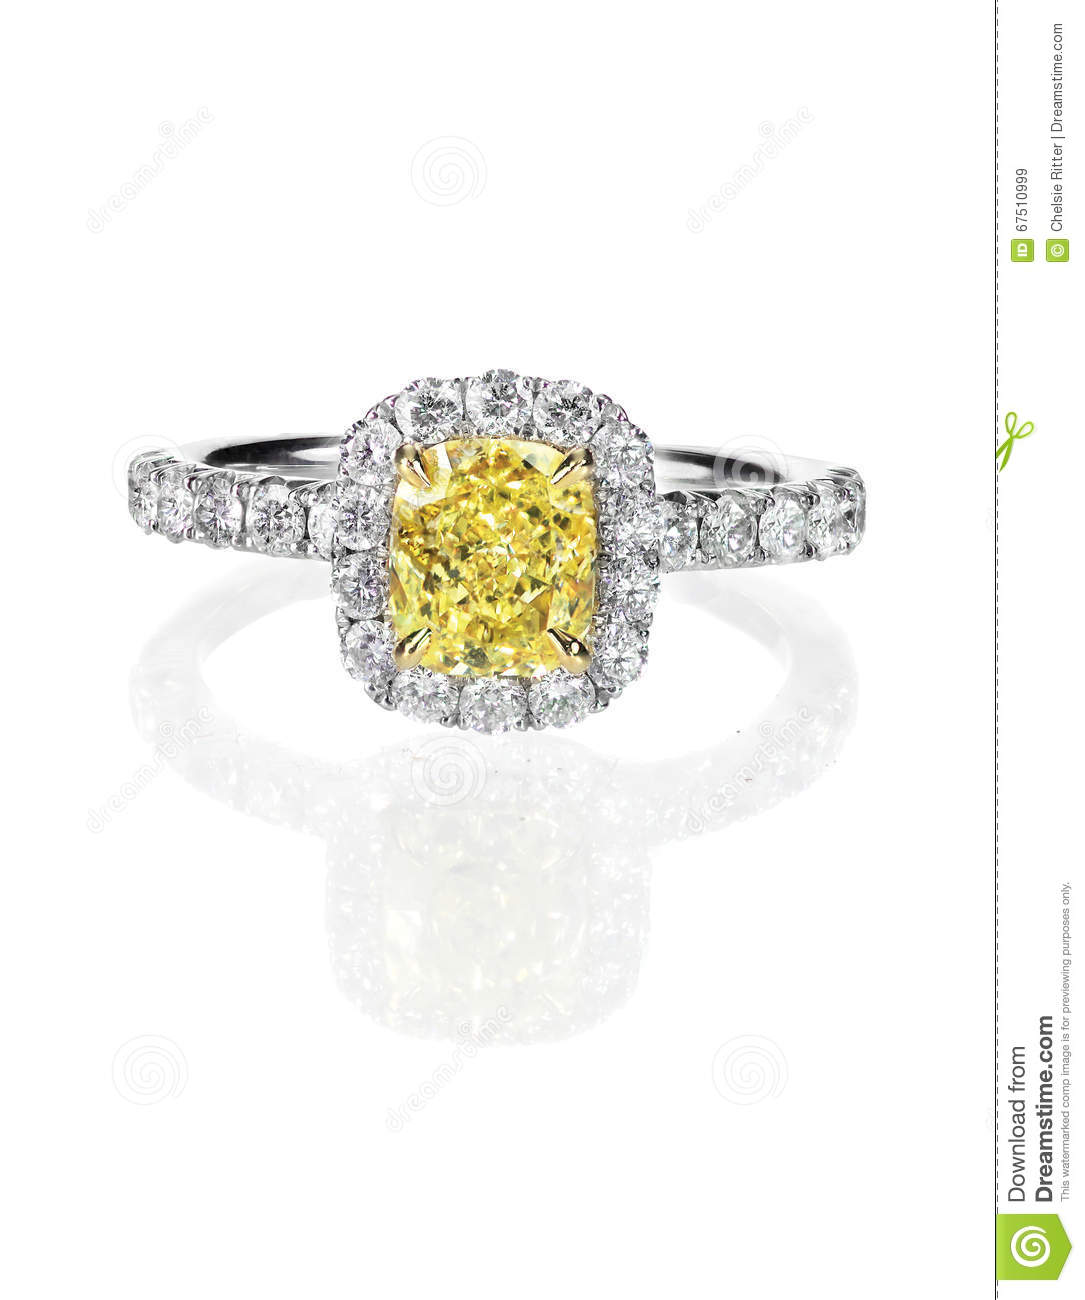 products citrine sapphire rings ring irish gem white gold canary yellow the engagement